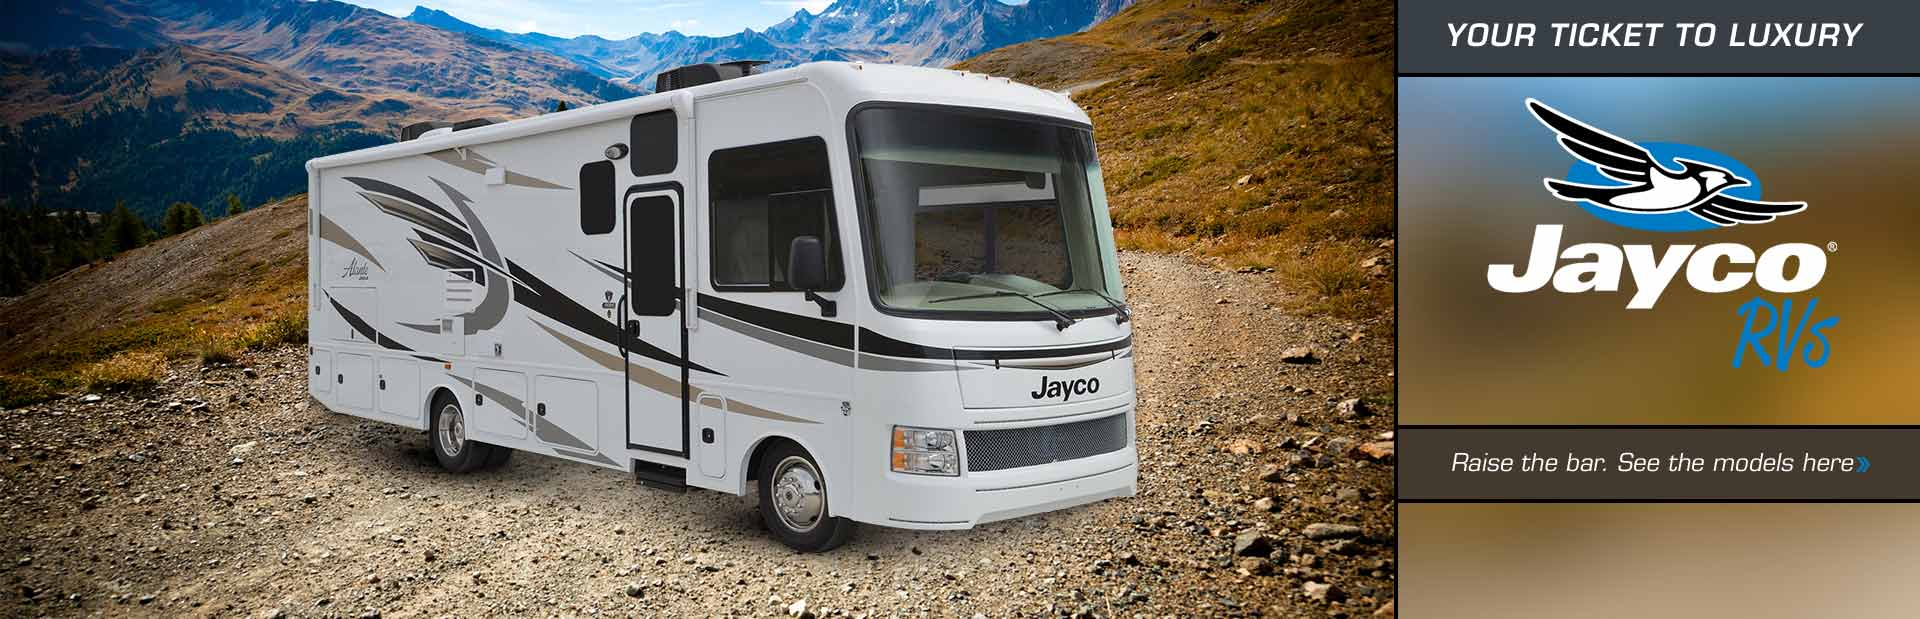 Jayco RVs: Click here to view the models.